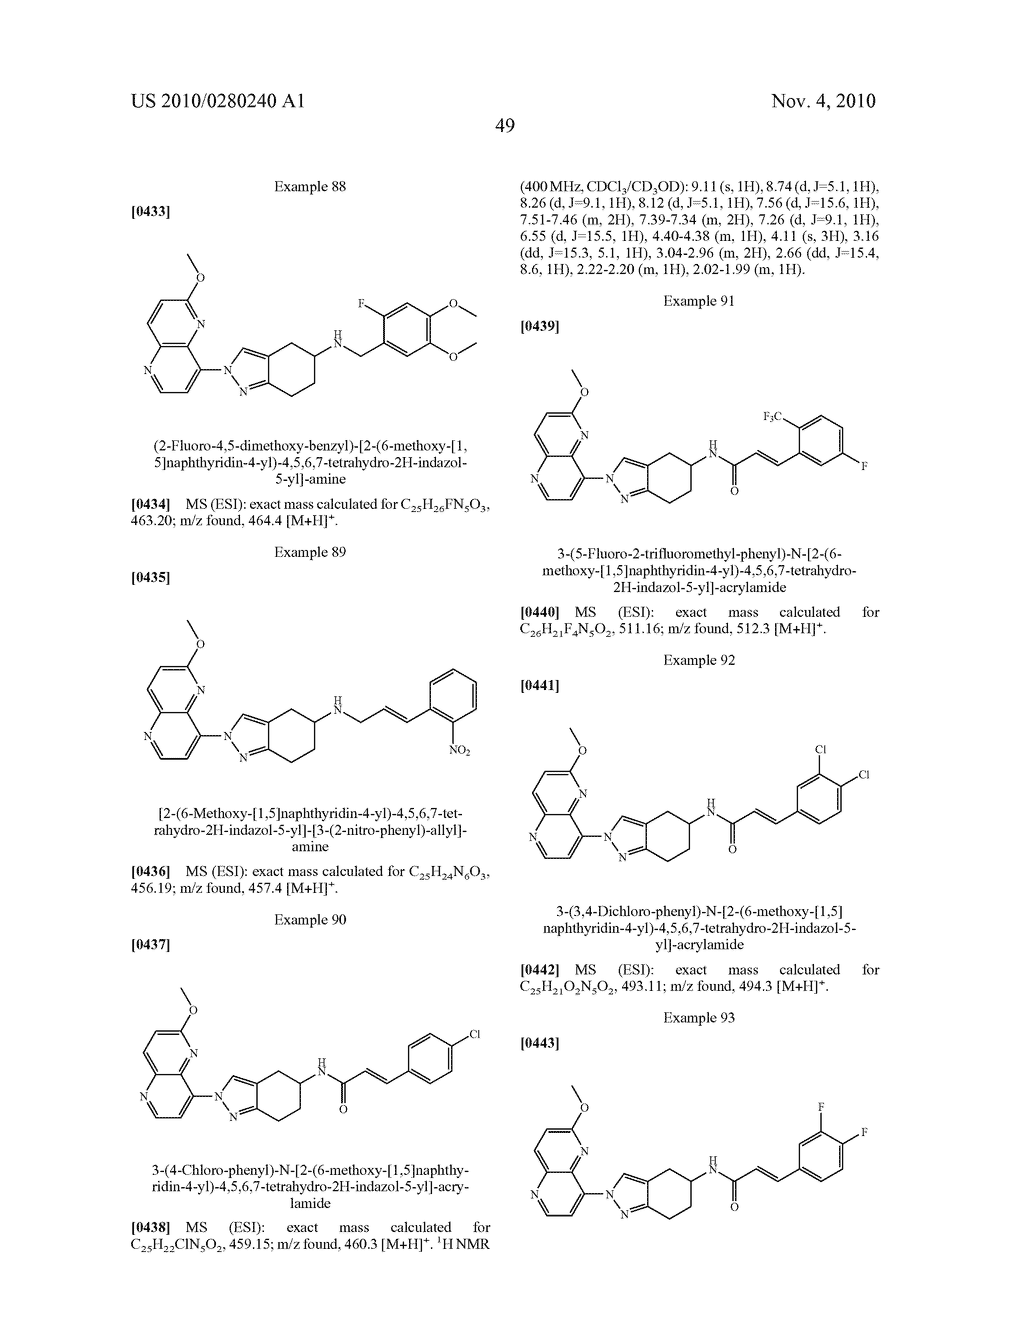 BICYCLIC PYRAZOLE COMPOUNDS AS ANTIBACTERIAL AGENTS - diagram, schematic, and image 50